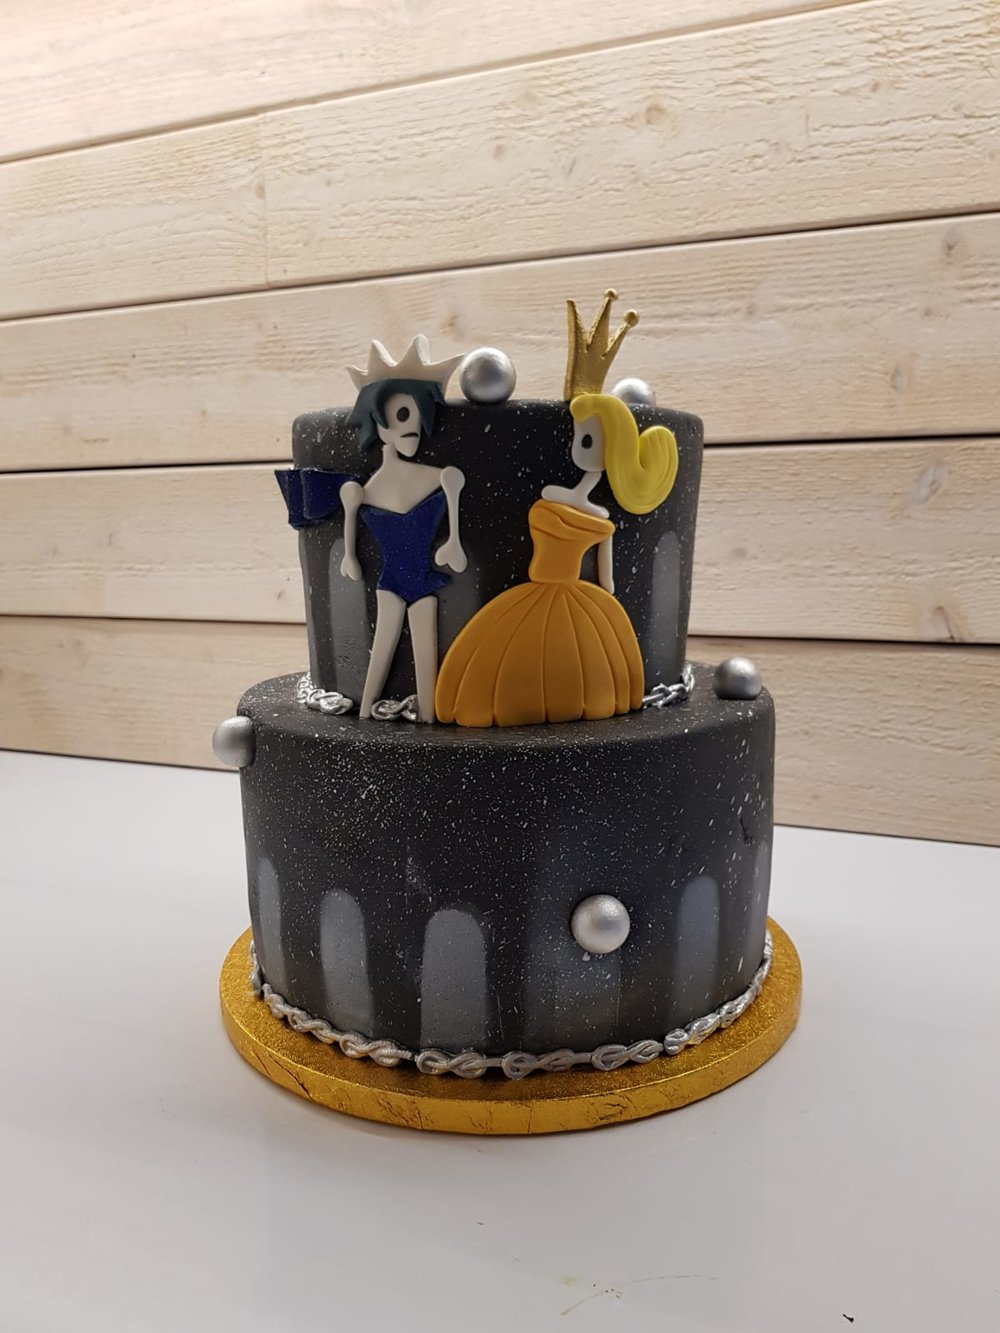 And what sorcery is this? A cake inspired by Dokuro!